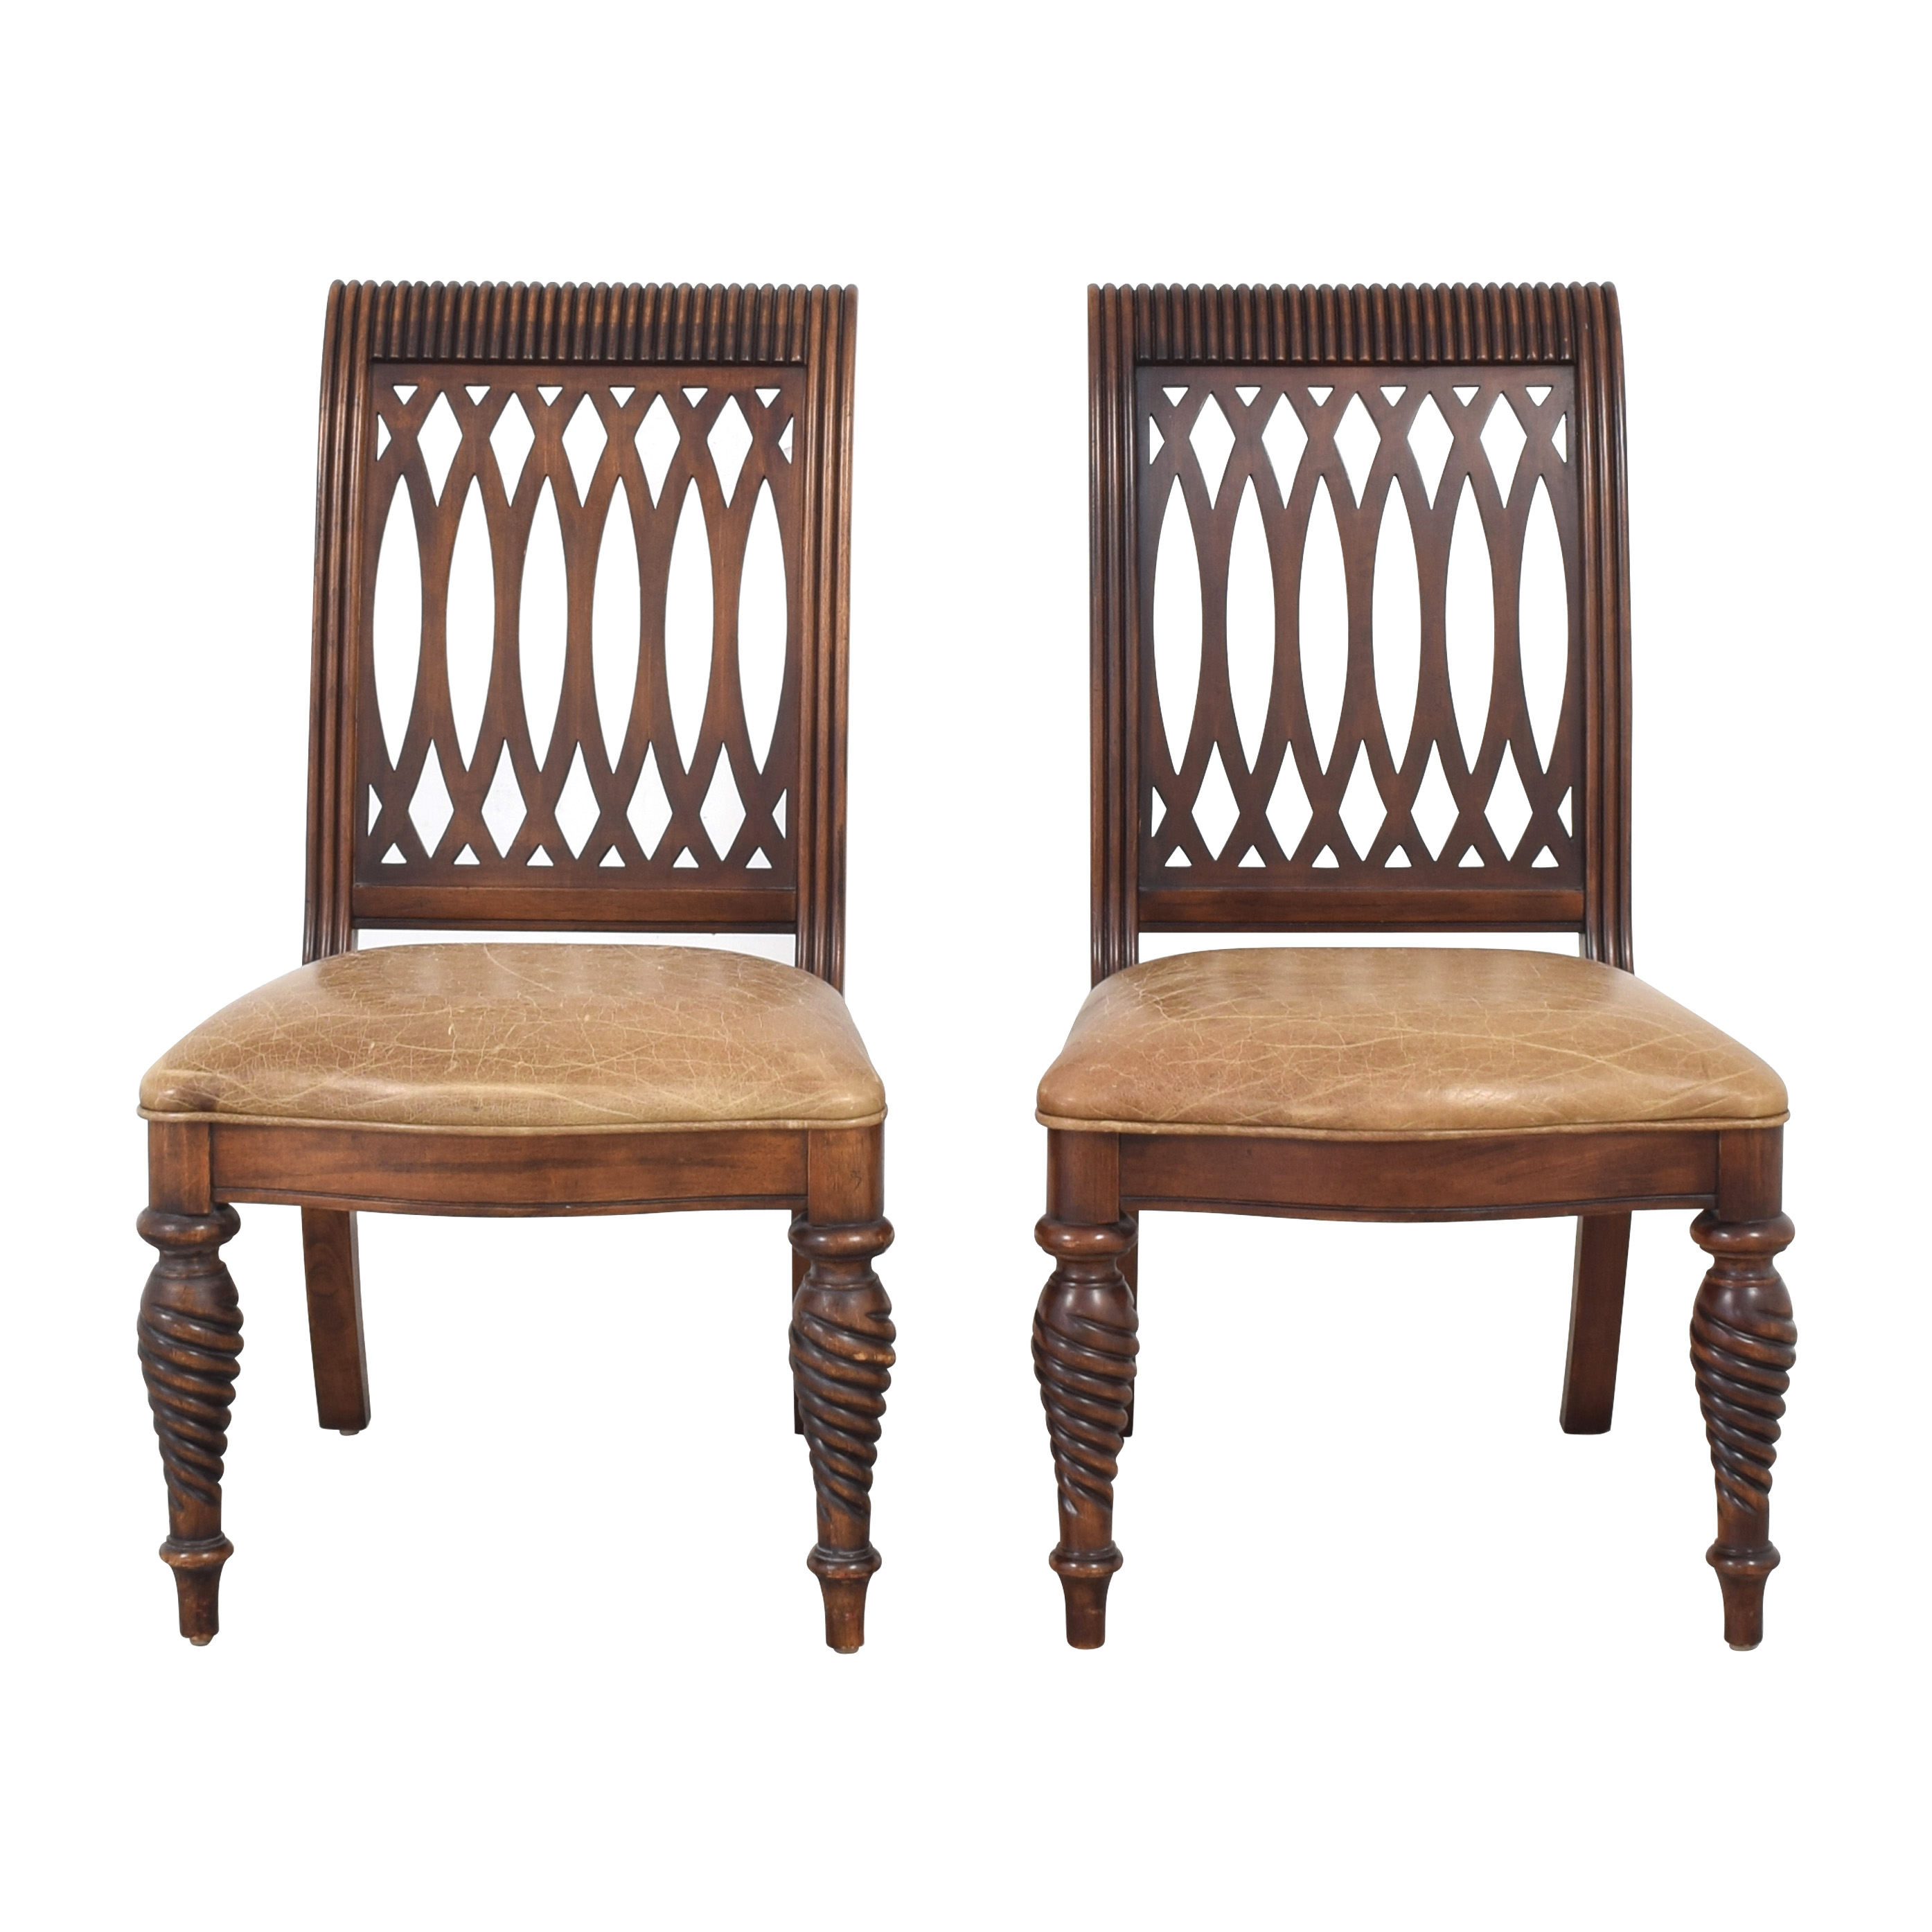 shop Bernhardt Upholstered Dining Chairs Bernhardt Accent Chairs